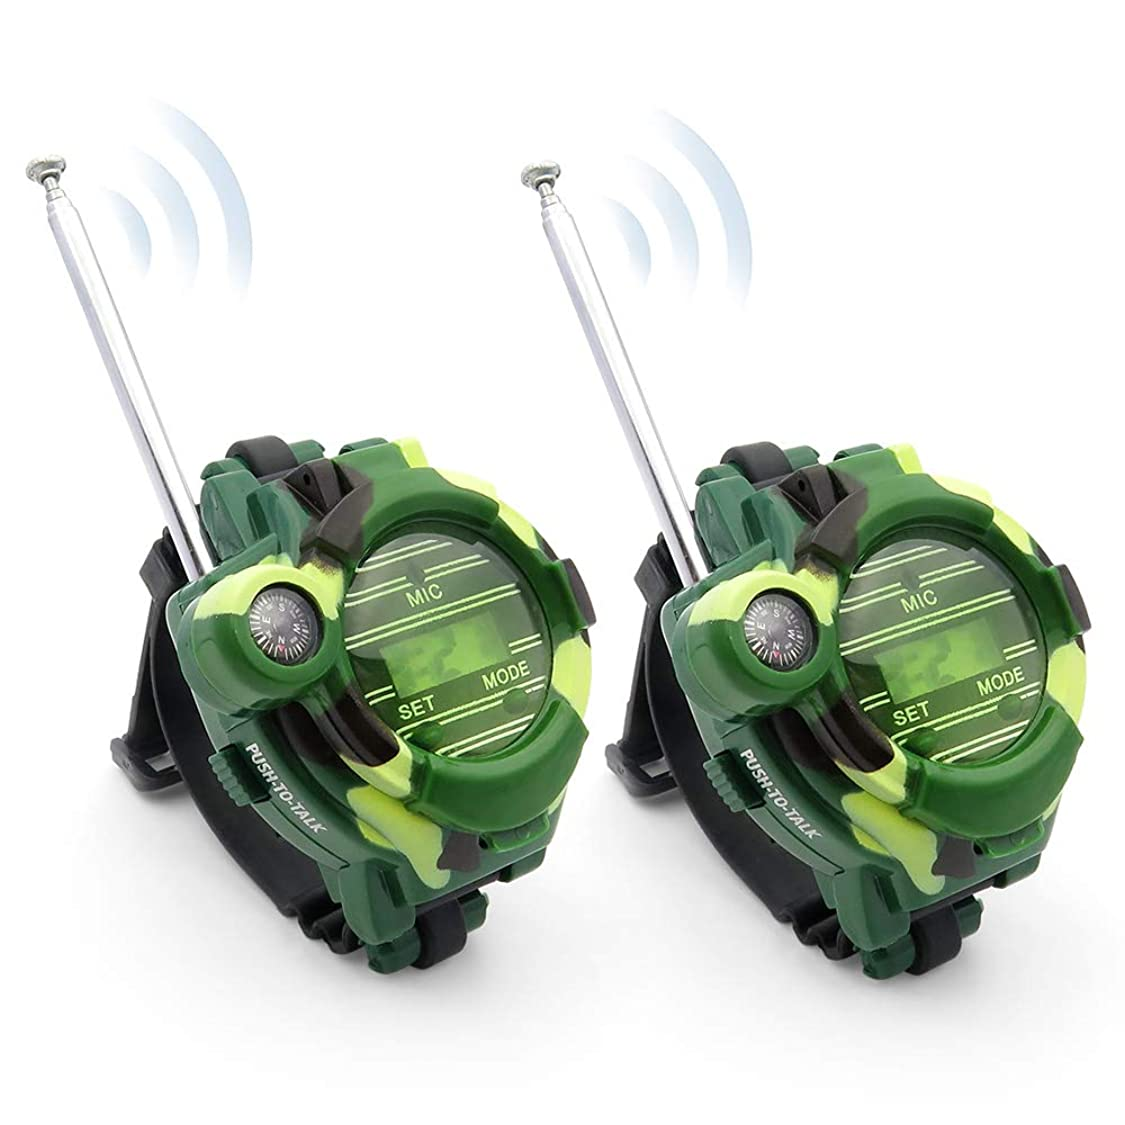 Kids Walkie Talkies, XHAIZ Long Range Walky-Talky Watch for Kids, Cool Outdoor Gifts For Boys and Girls mc19588817710483